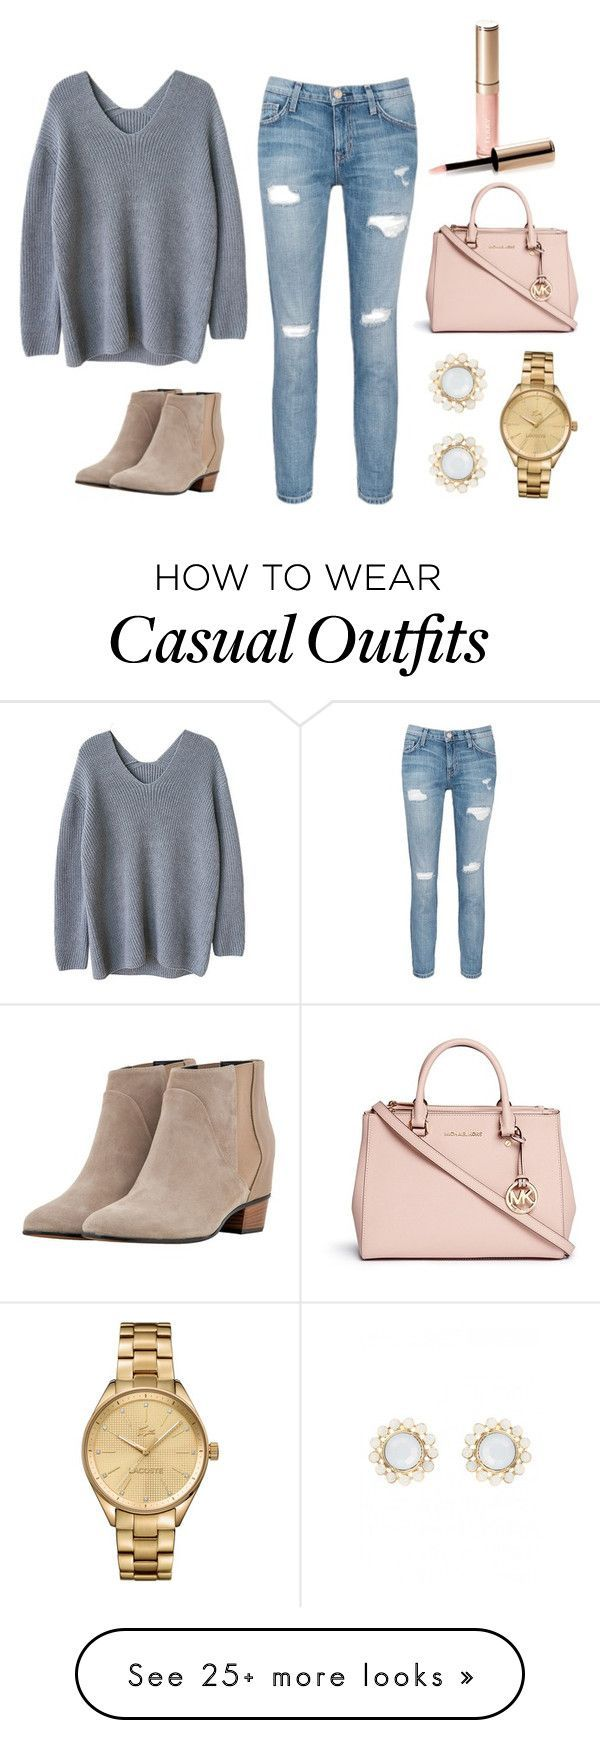 """""""Casual but Cute"""" by martin-annakate on Polyvore featuring Current/Elliott, Golden Goose, Michael Kors, Lacoste and By Terry                                                                                                                                                     More"""